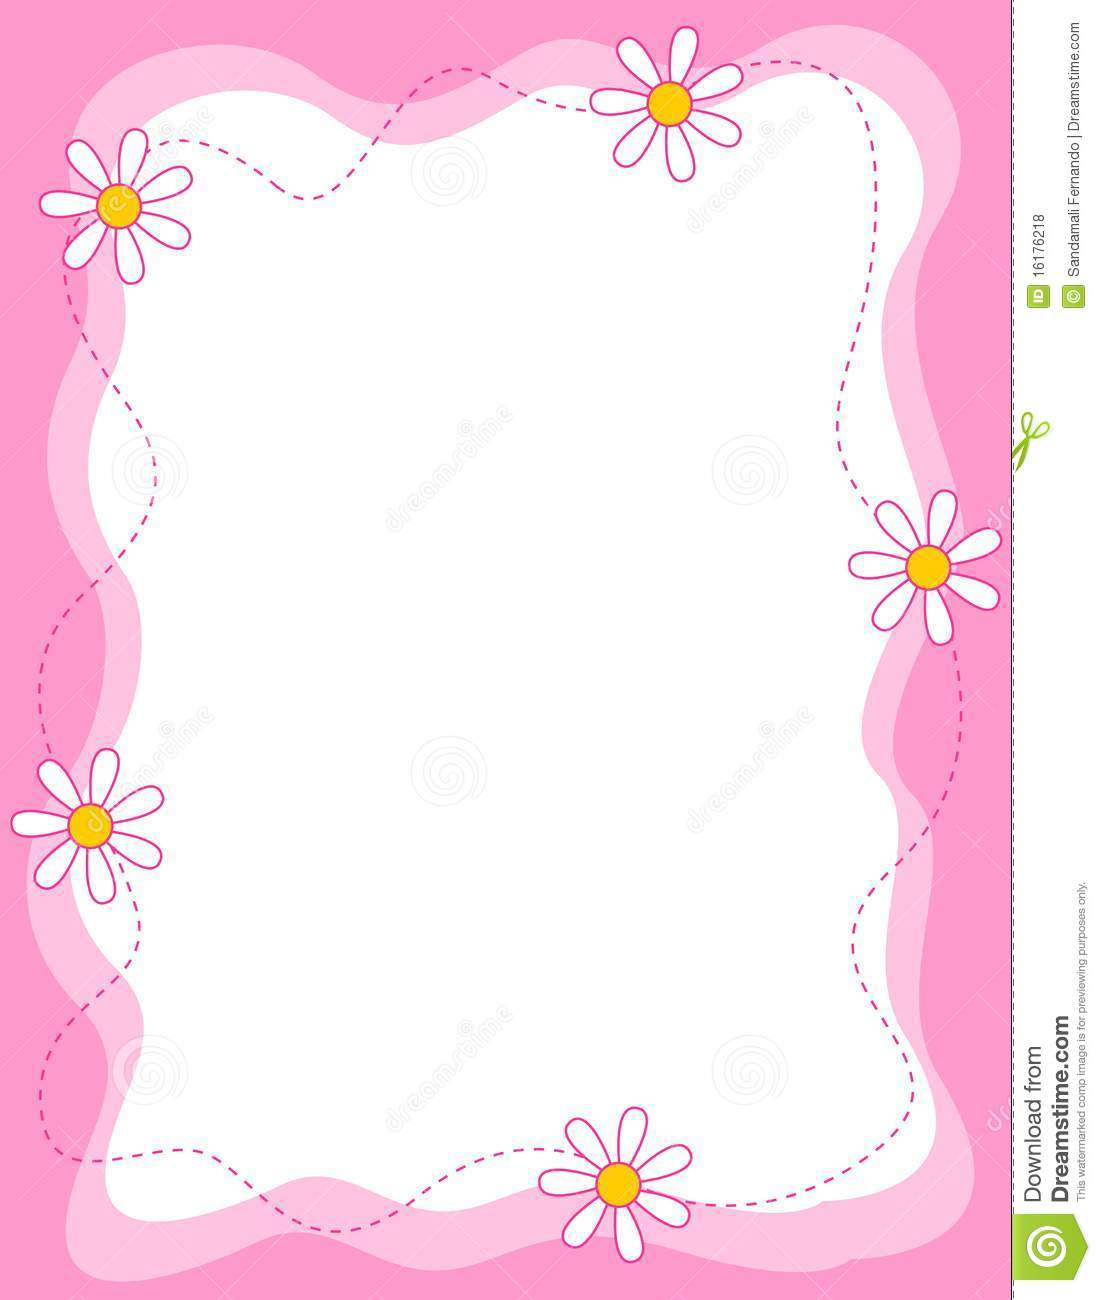 floral border frame stock vector illustration of daisies 16176218